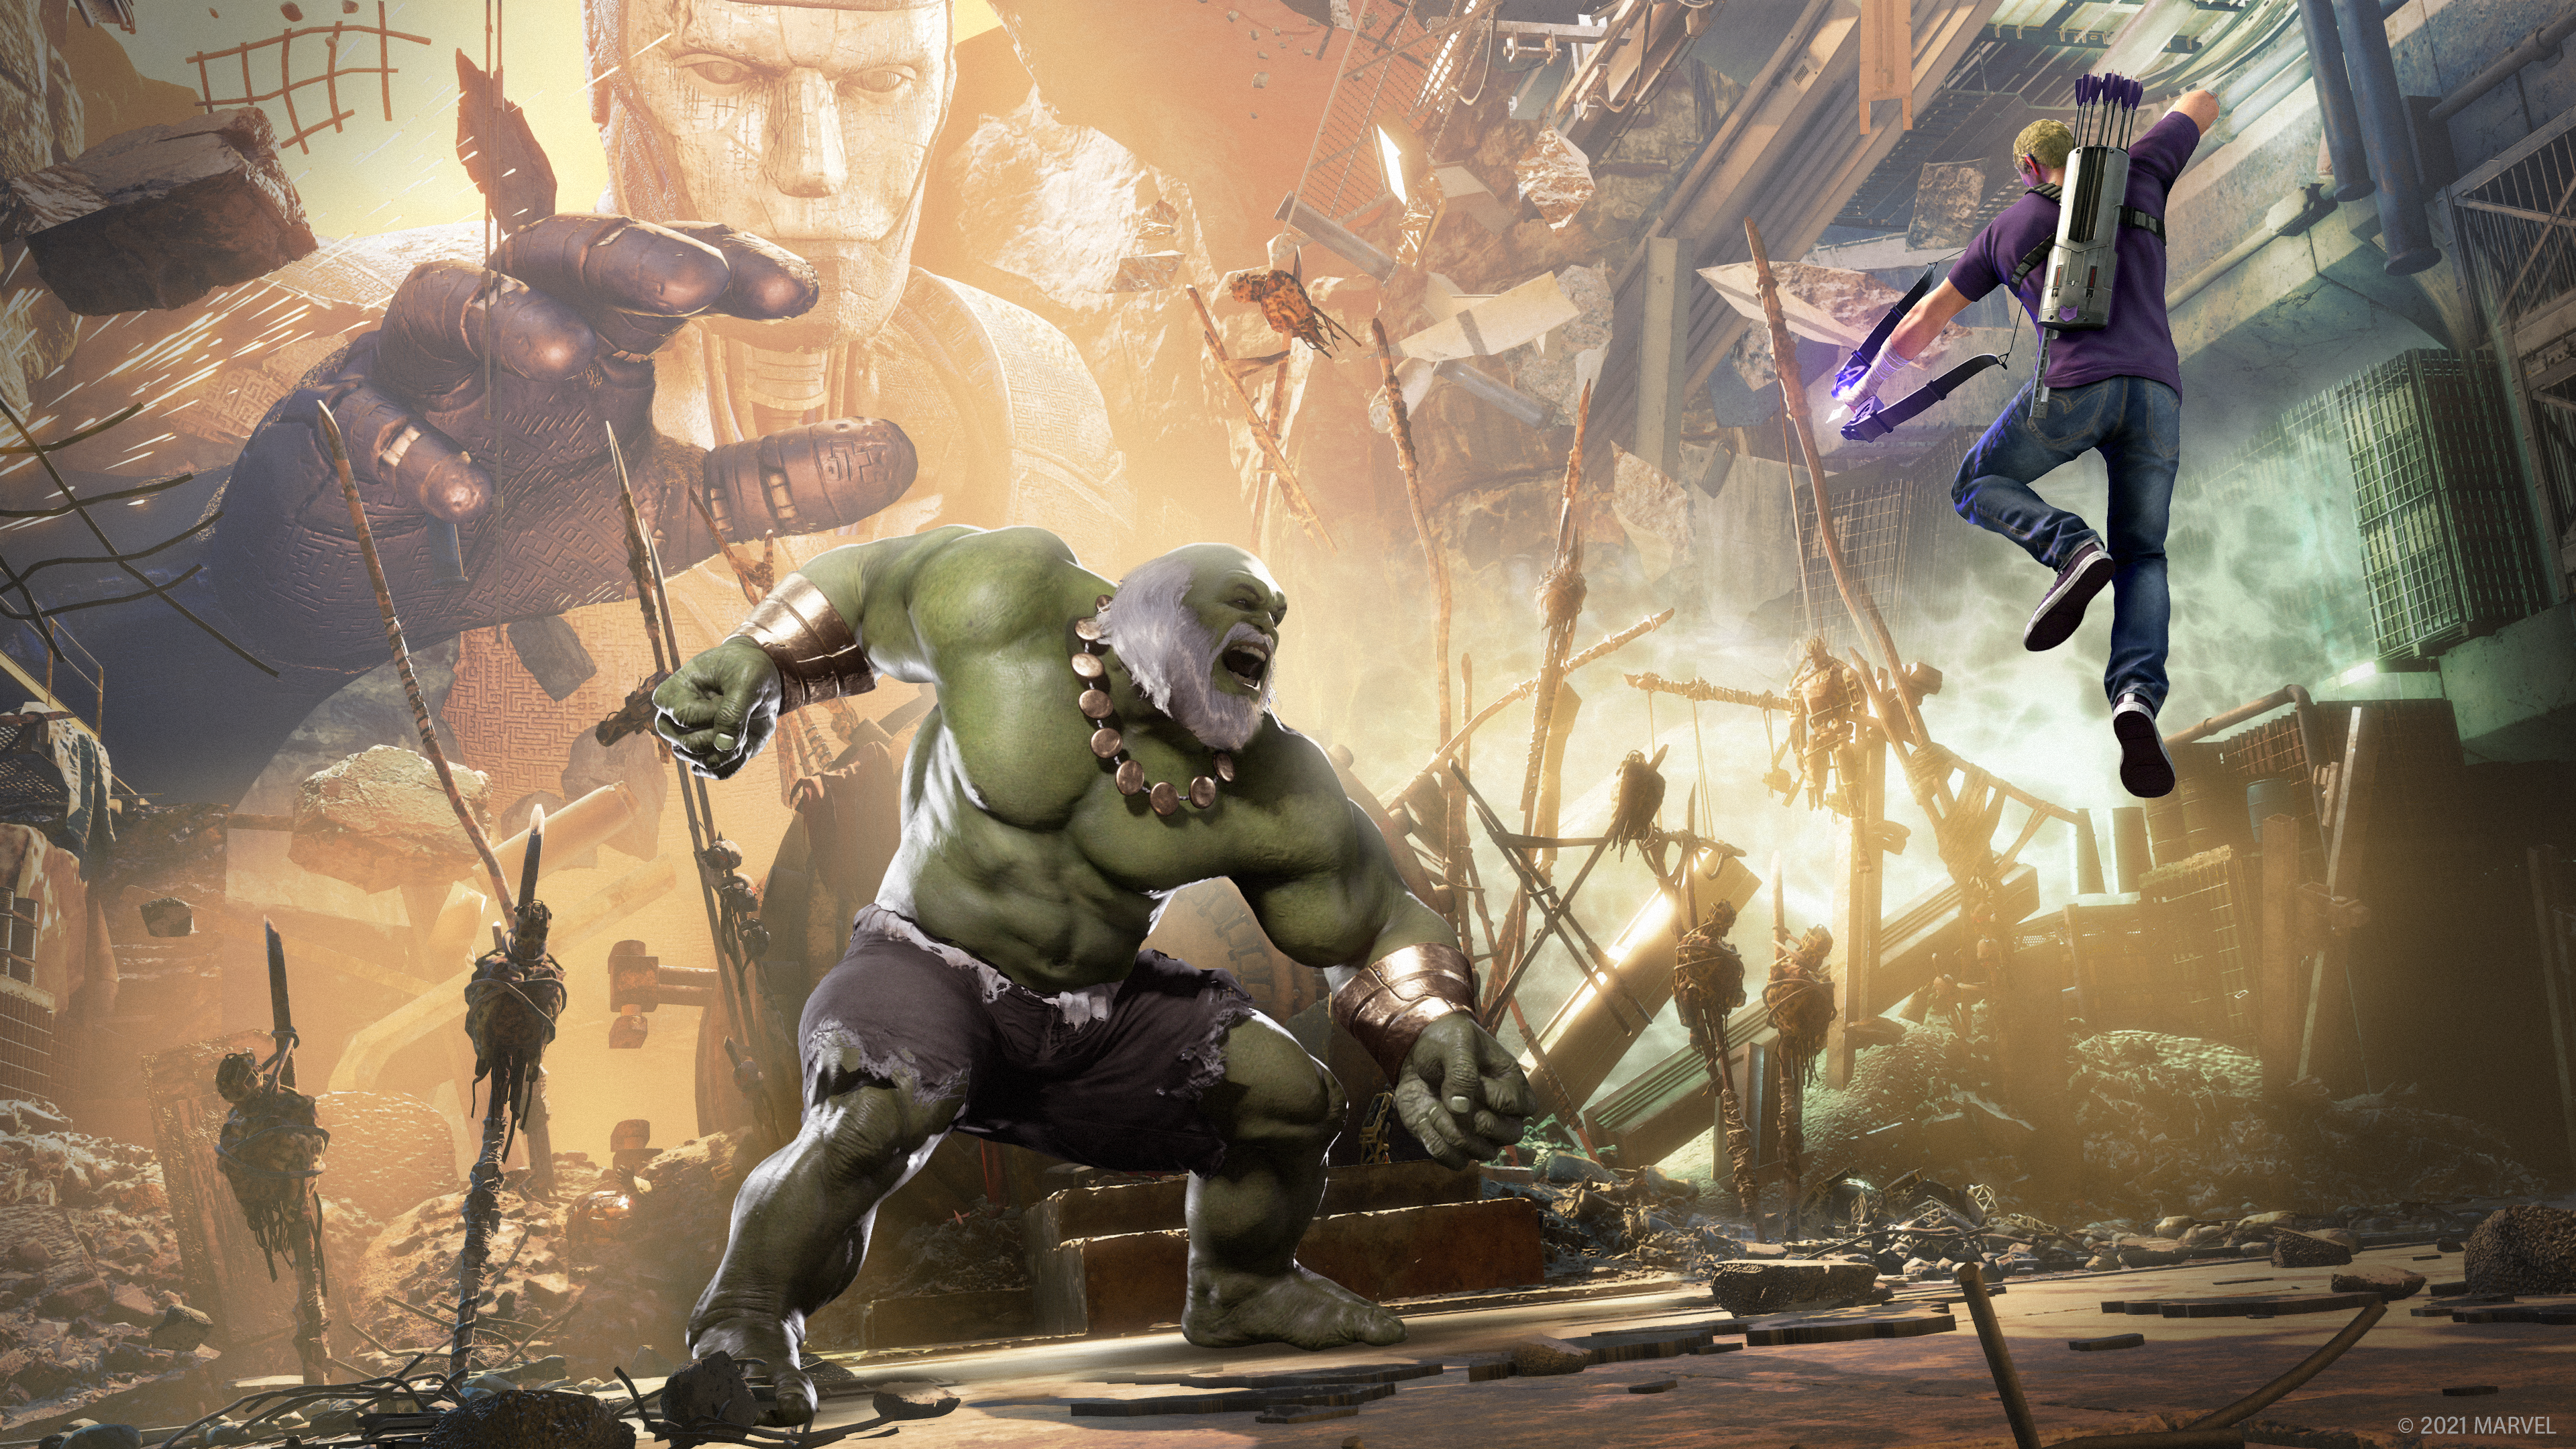 Clint Barton suspended in the air taking aim at Hulk